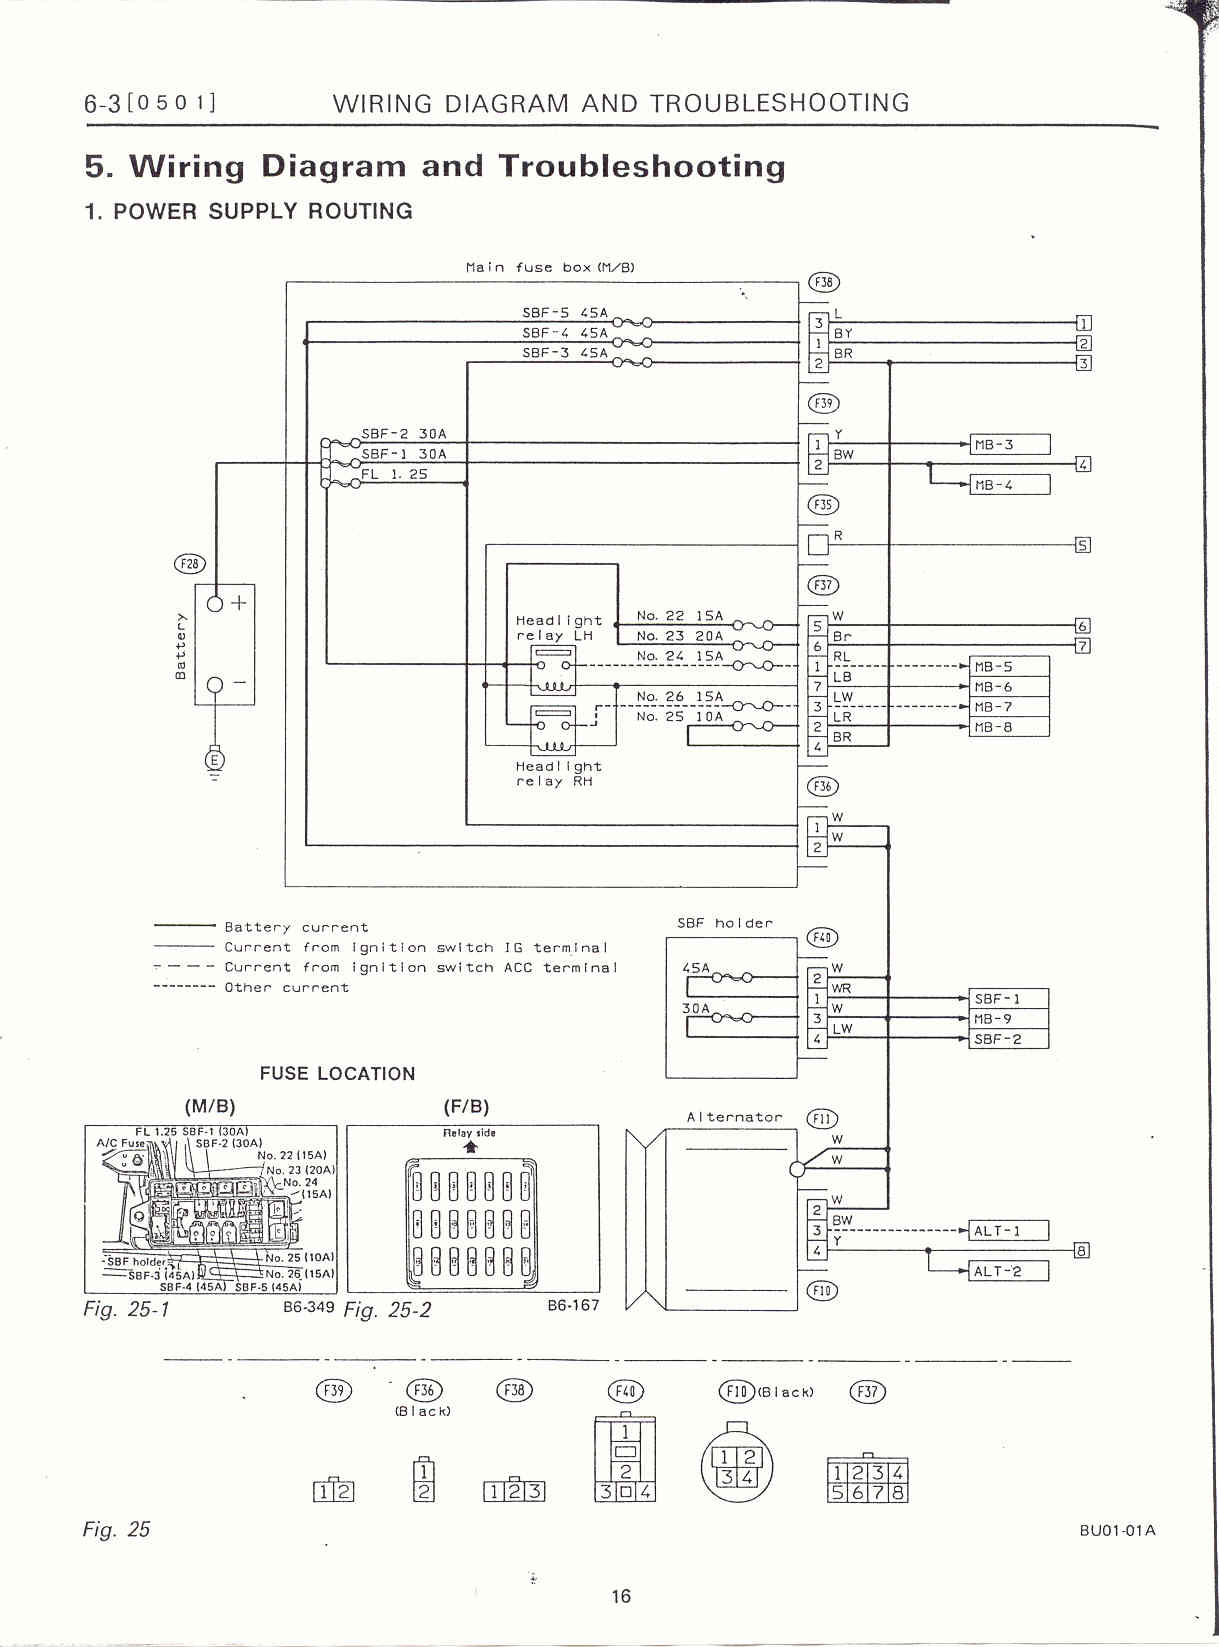 1994 Subaru    Legacy       Wiring       Diagram         Wiring       Diagram